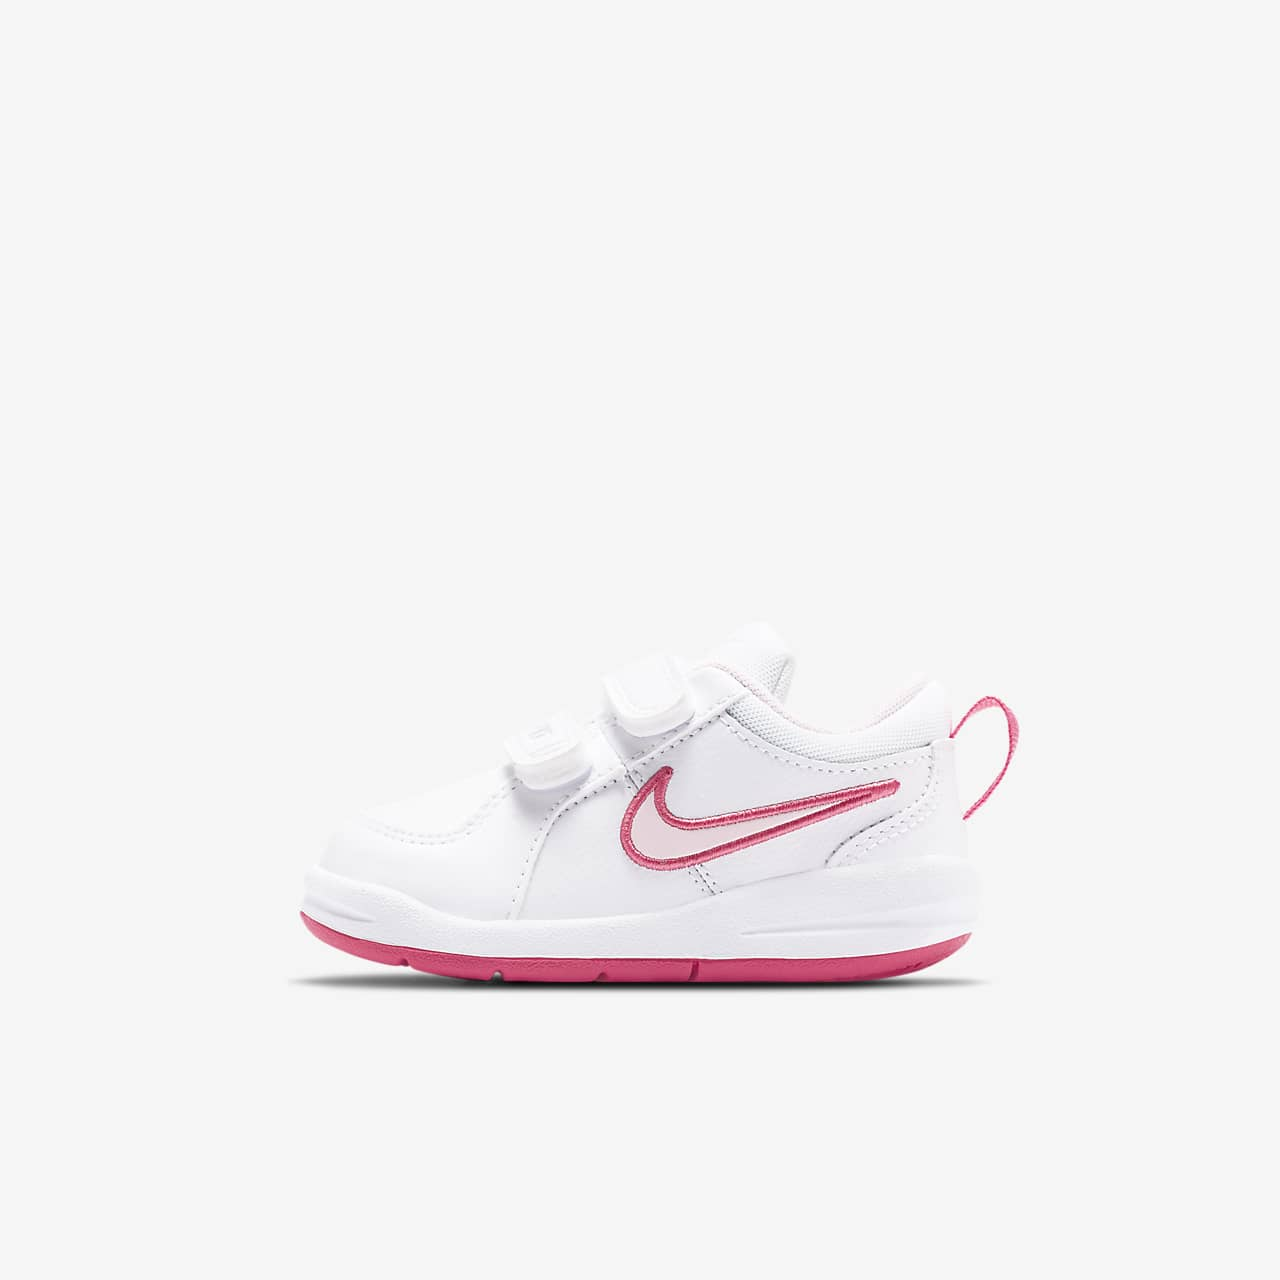 wholesale dealer 935de 7fe21 Nike Pico 4 (1.5–9.5) Baby and Toddler Girls  Shoe. Nike.com ZA